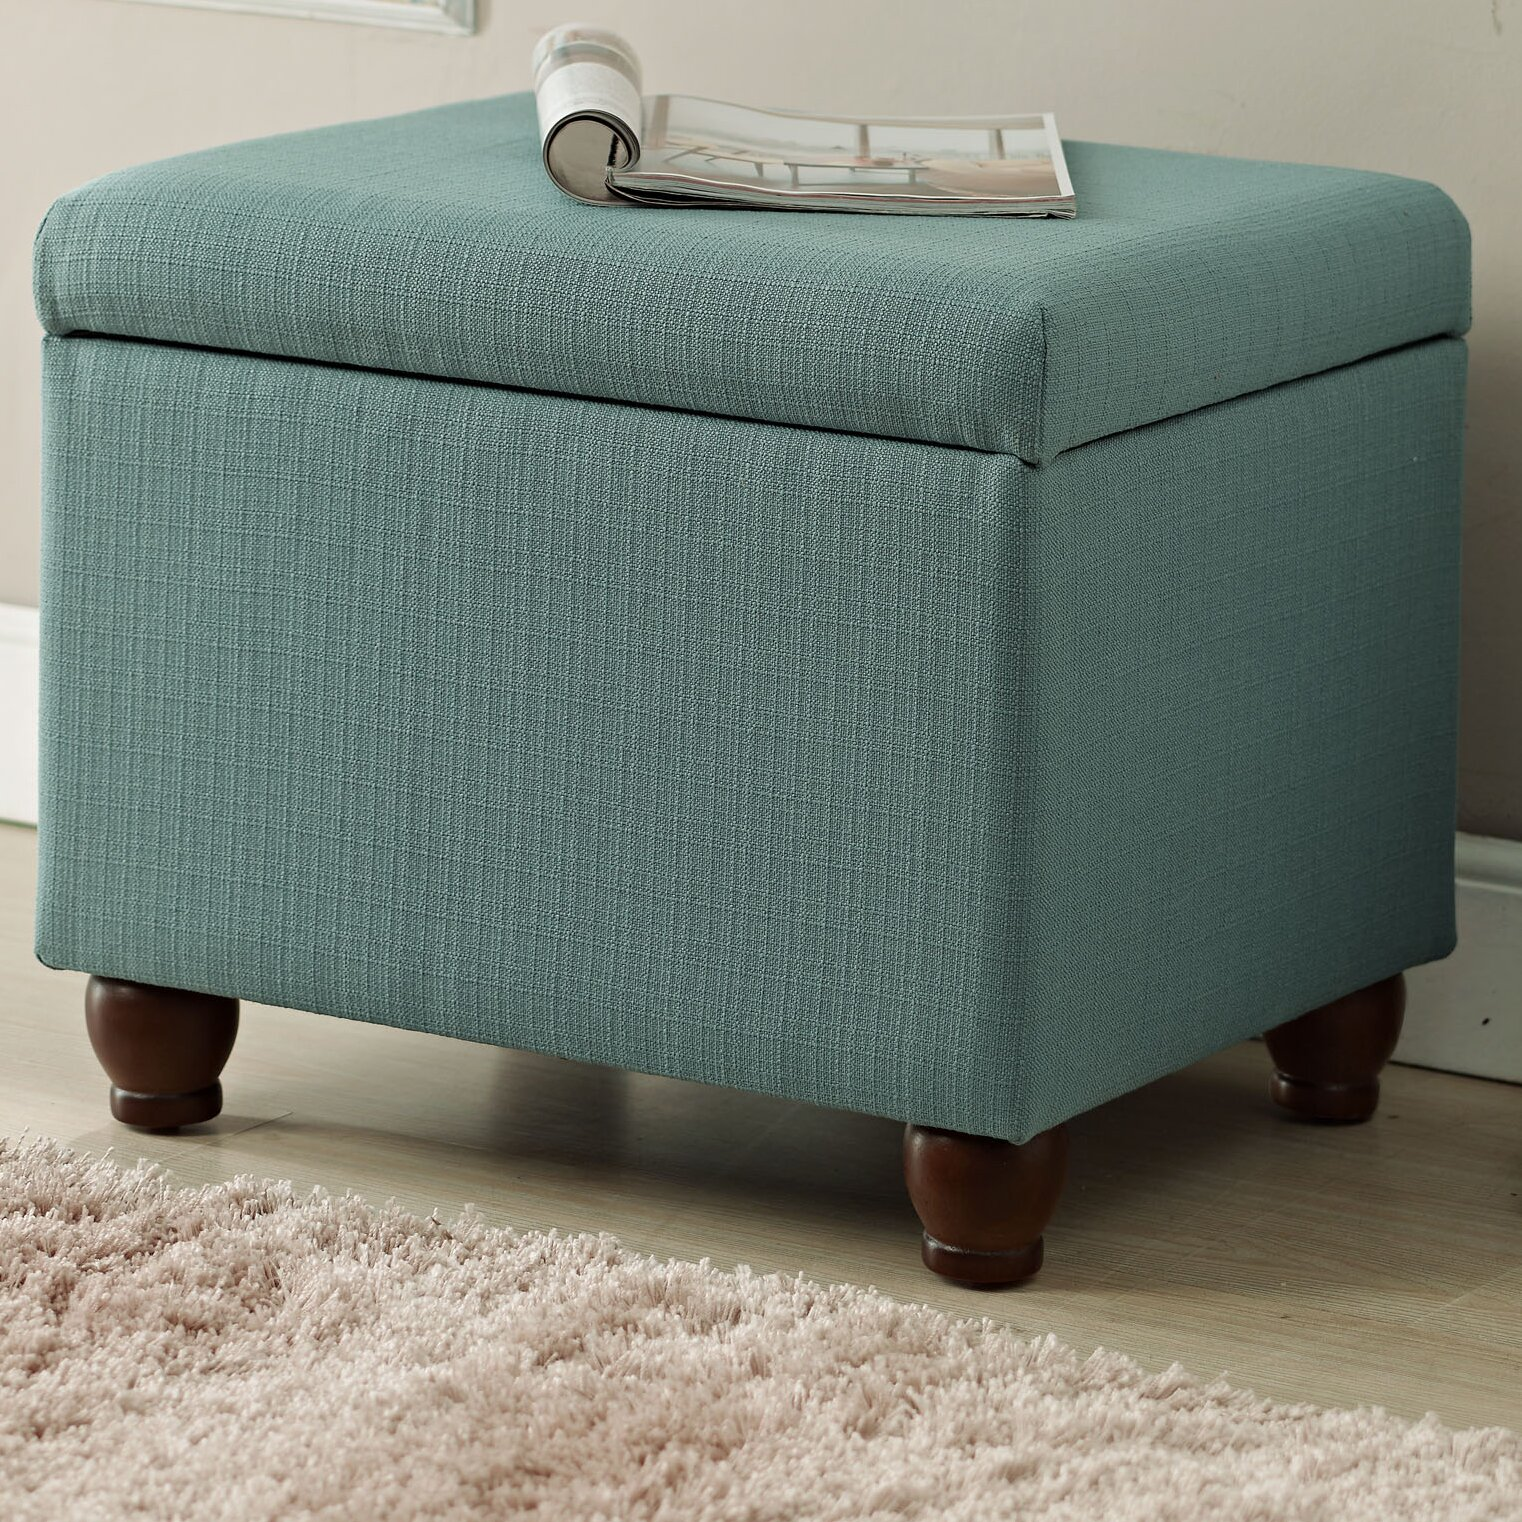 Homepop upholstered storage cube ottoman reviews wayfair for What is an ottoman for